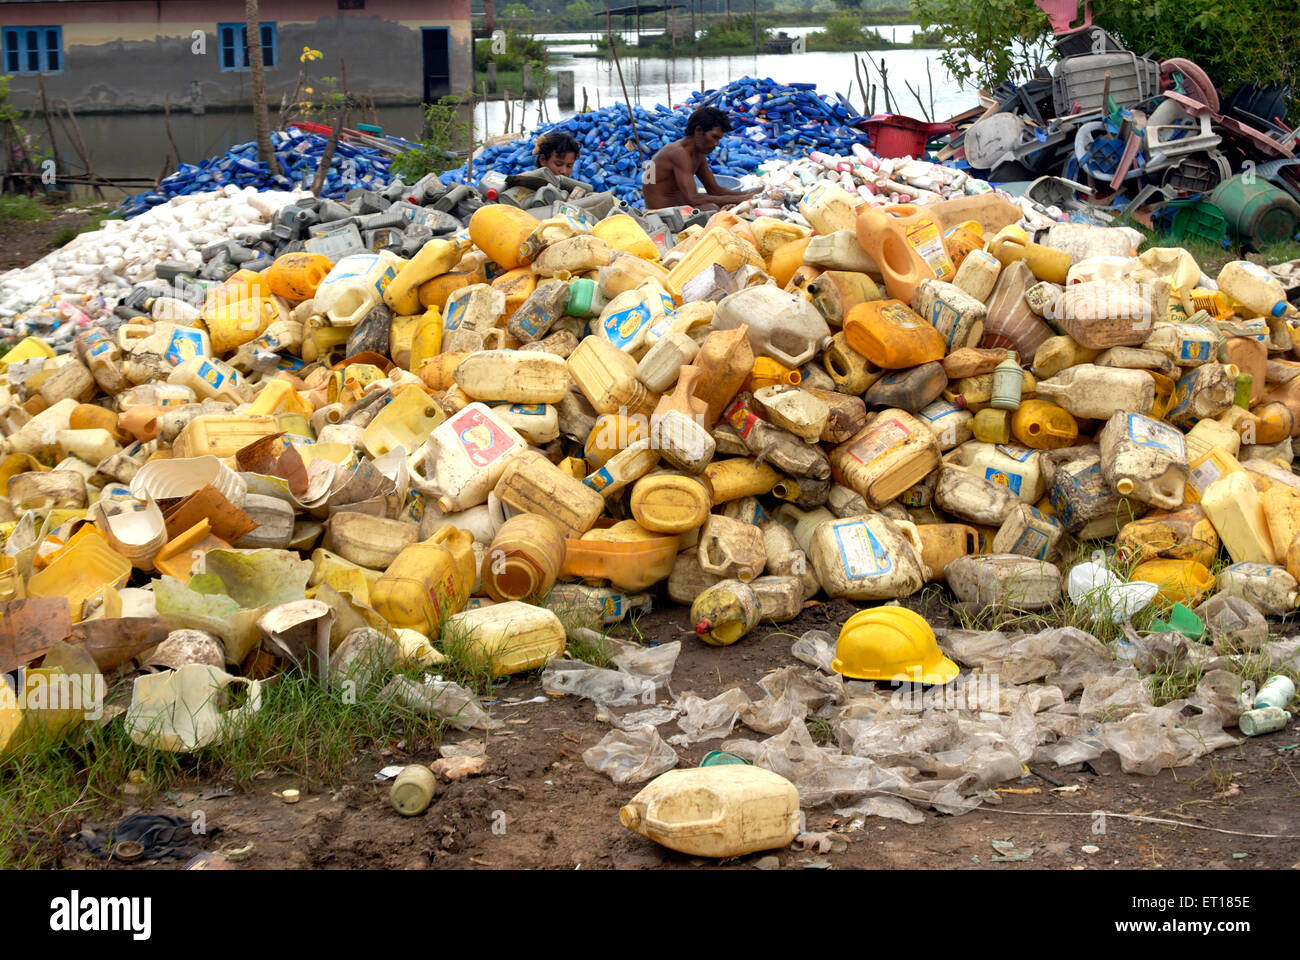 Plastic junk waste on Redskin Islands ; Andaman Nicobar Islands ; Bay of Bengal ; India October 2008 - Stock Image